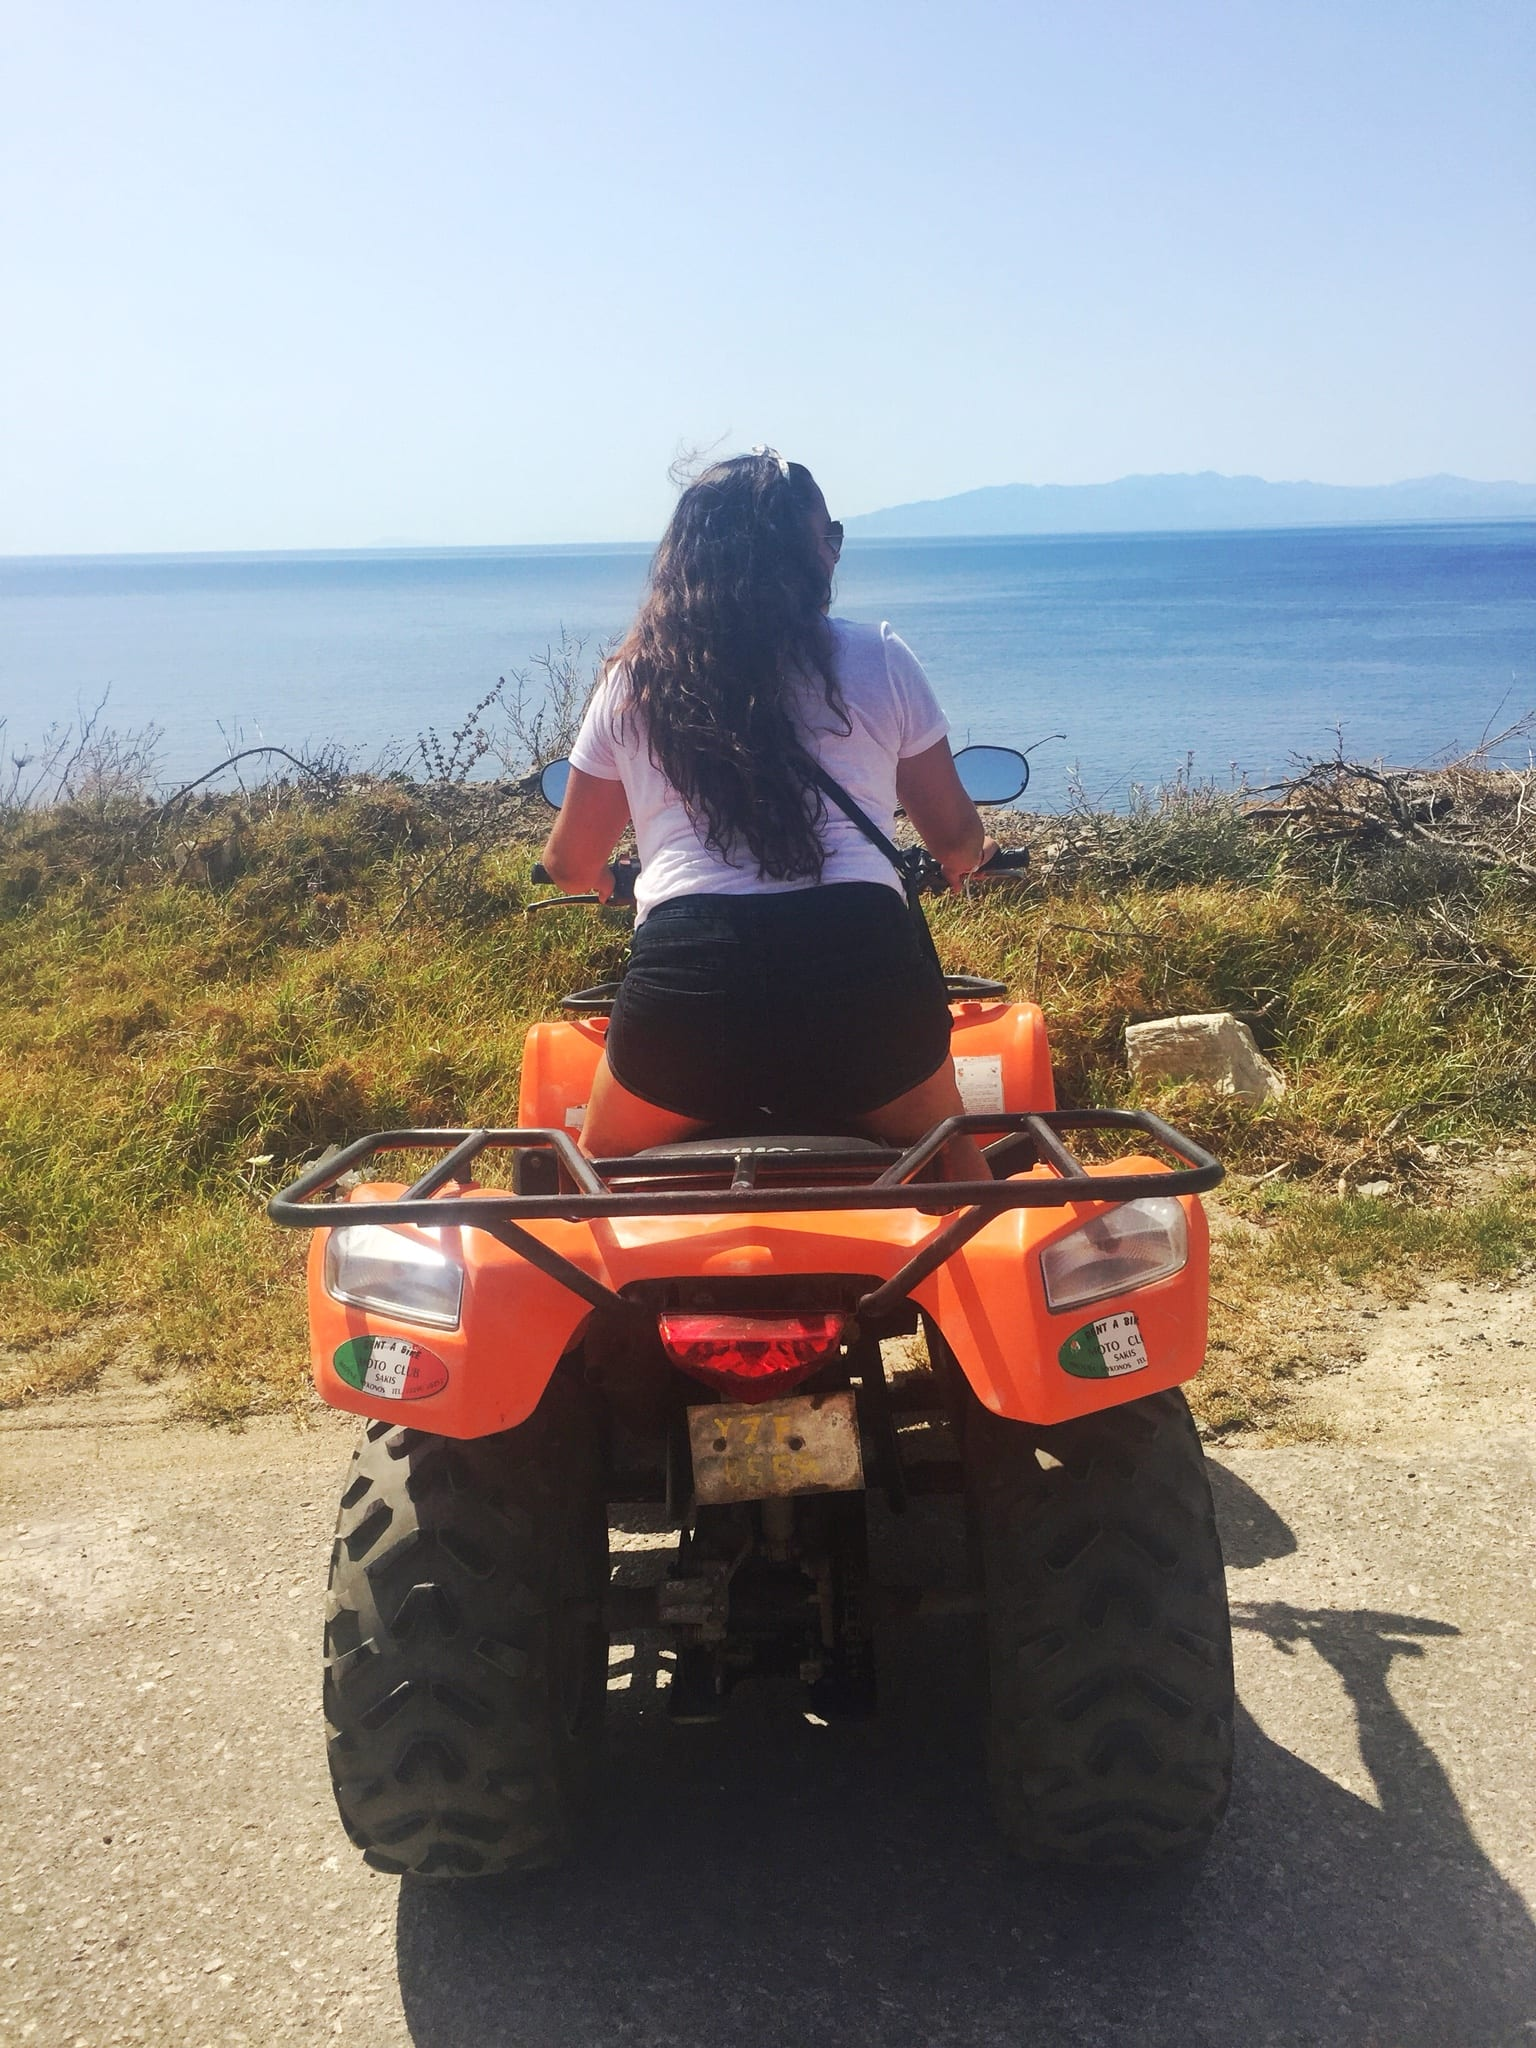 mykonos greece atv ride | The Best Greek Islands: the Ultimate Guide featured by popular San Diego travel blogger, The Brunette & The Beach: Mykonos